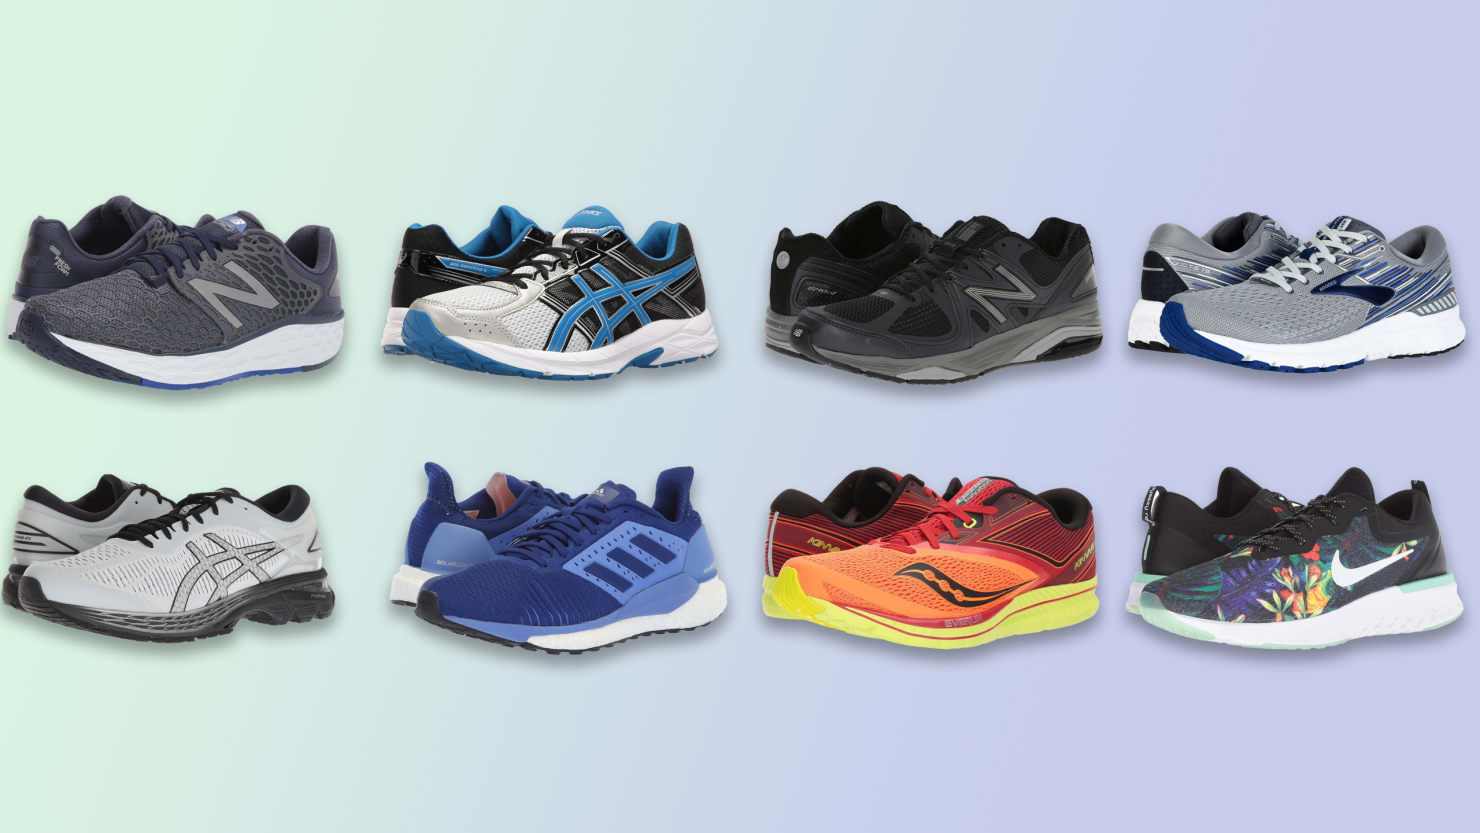 Scouted: A Runner's Guide to Getting the Right Type of Shoes For Your Unique Feet